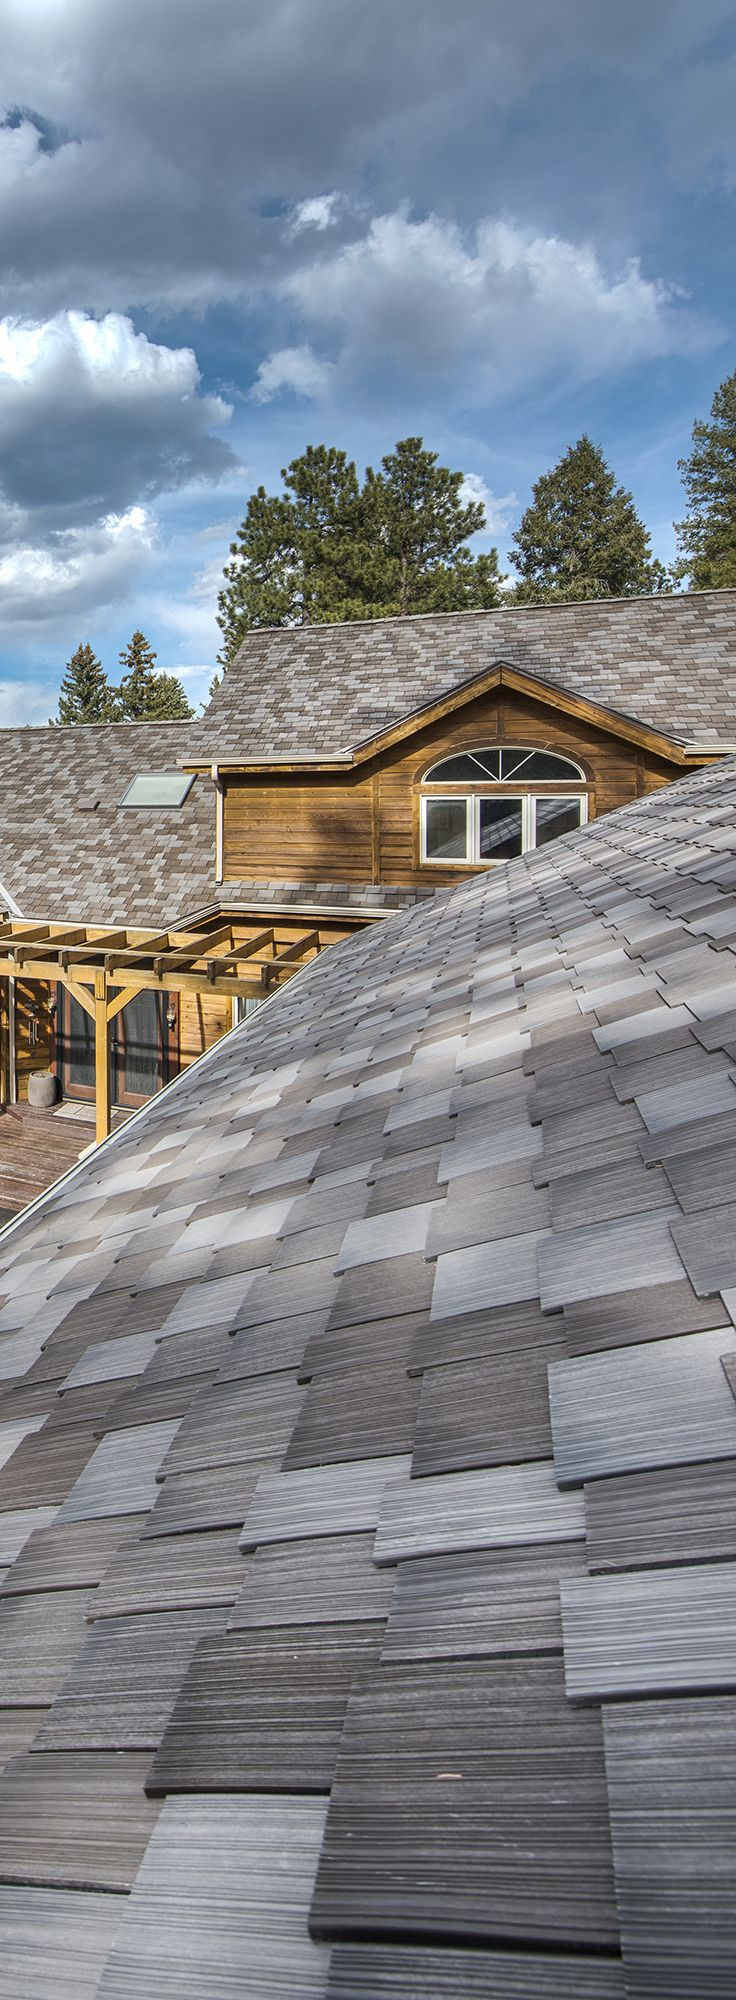 Quality roofing job begins before the shingles go on home remodeling - Cedar Shake Roofing Shingles Are Perfect For Rustic Home Renovations And Ply Gem S Composite Cedar